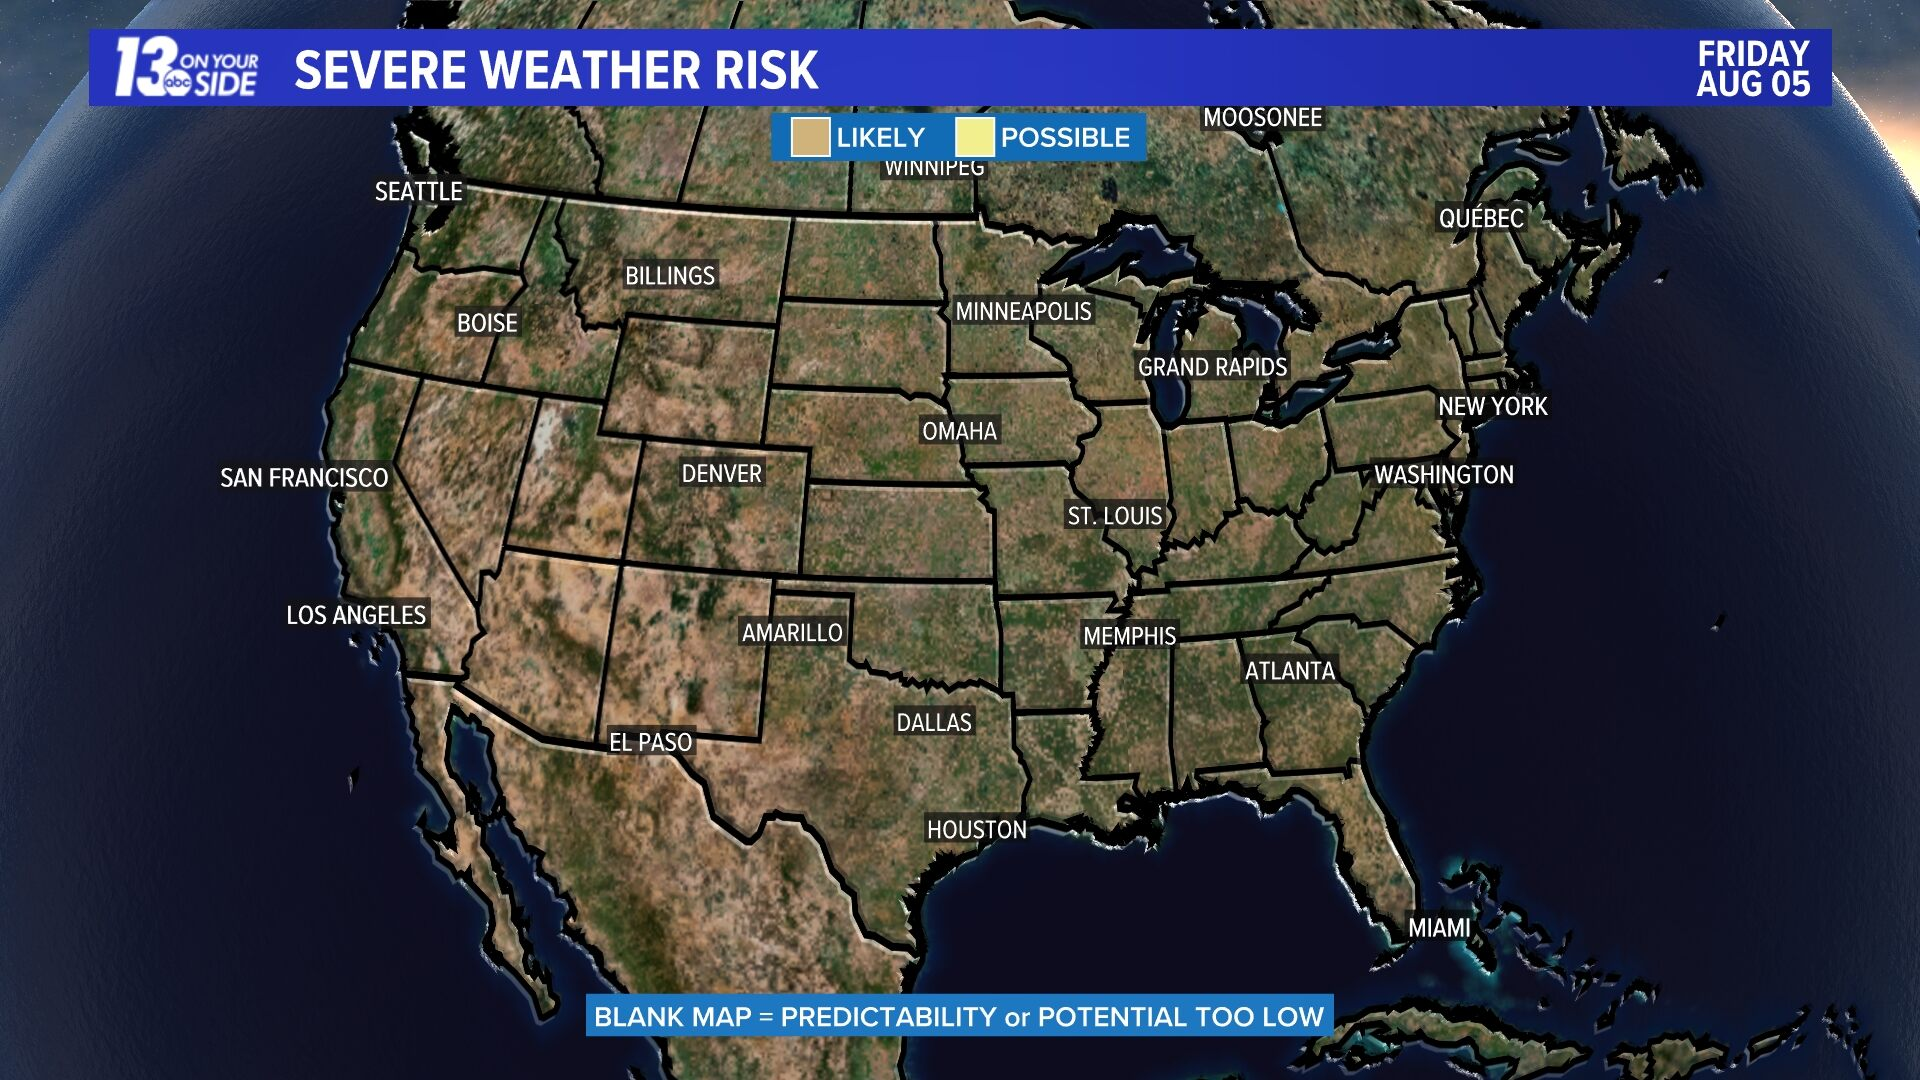 Day 4 Severe Weather Risk